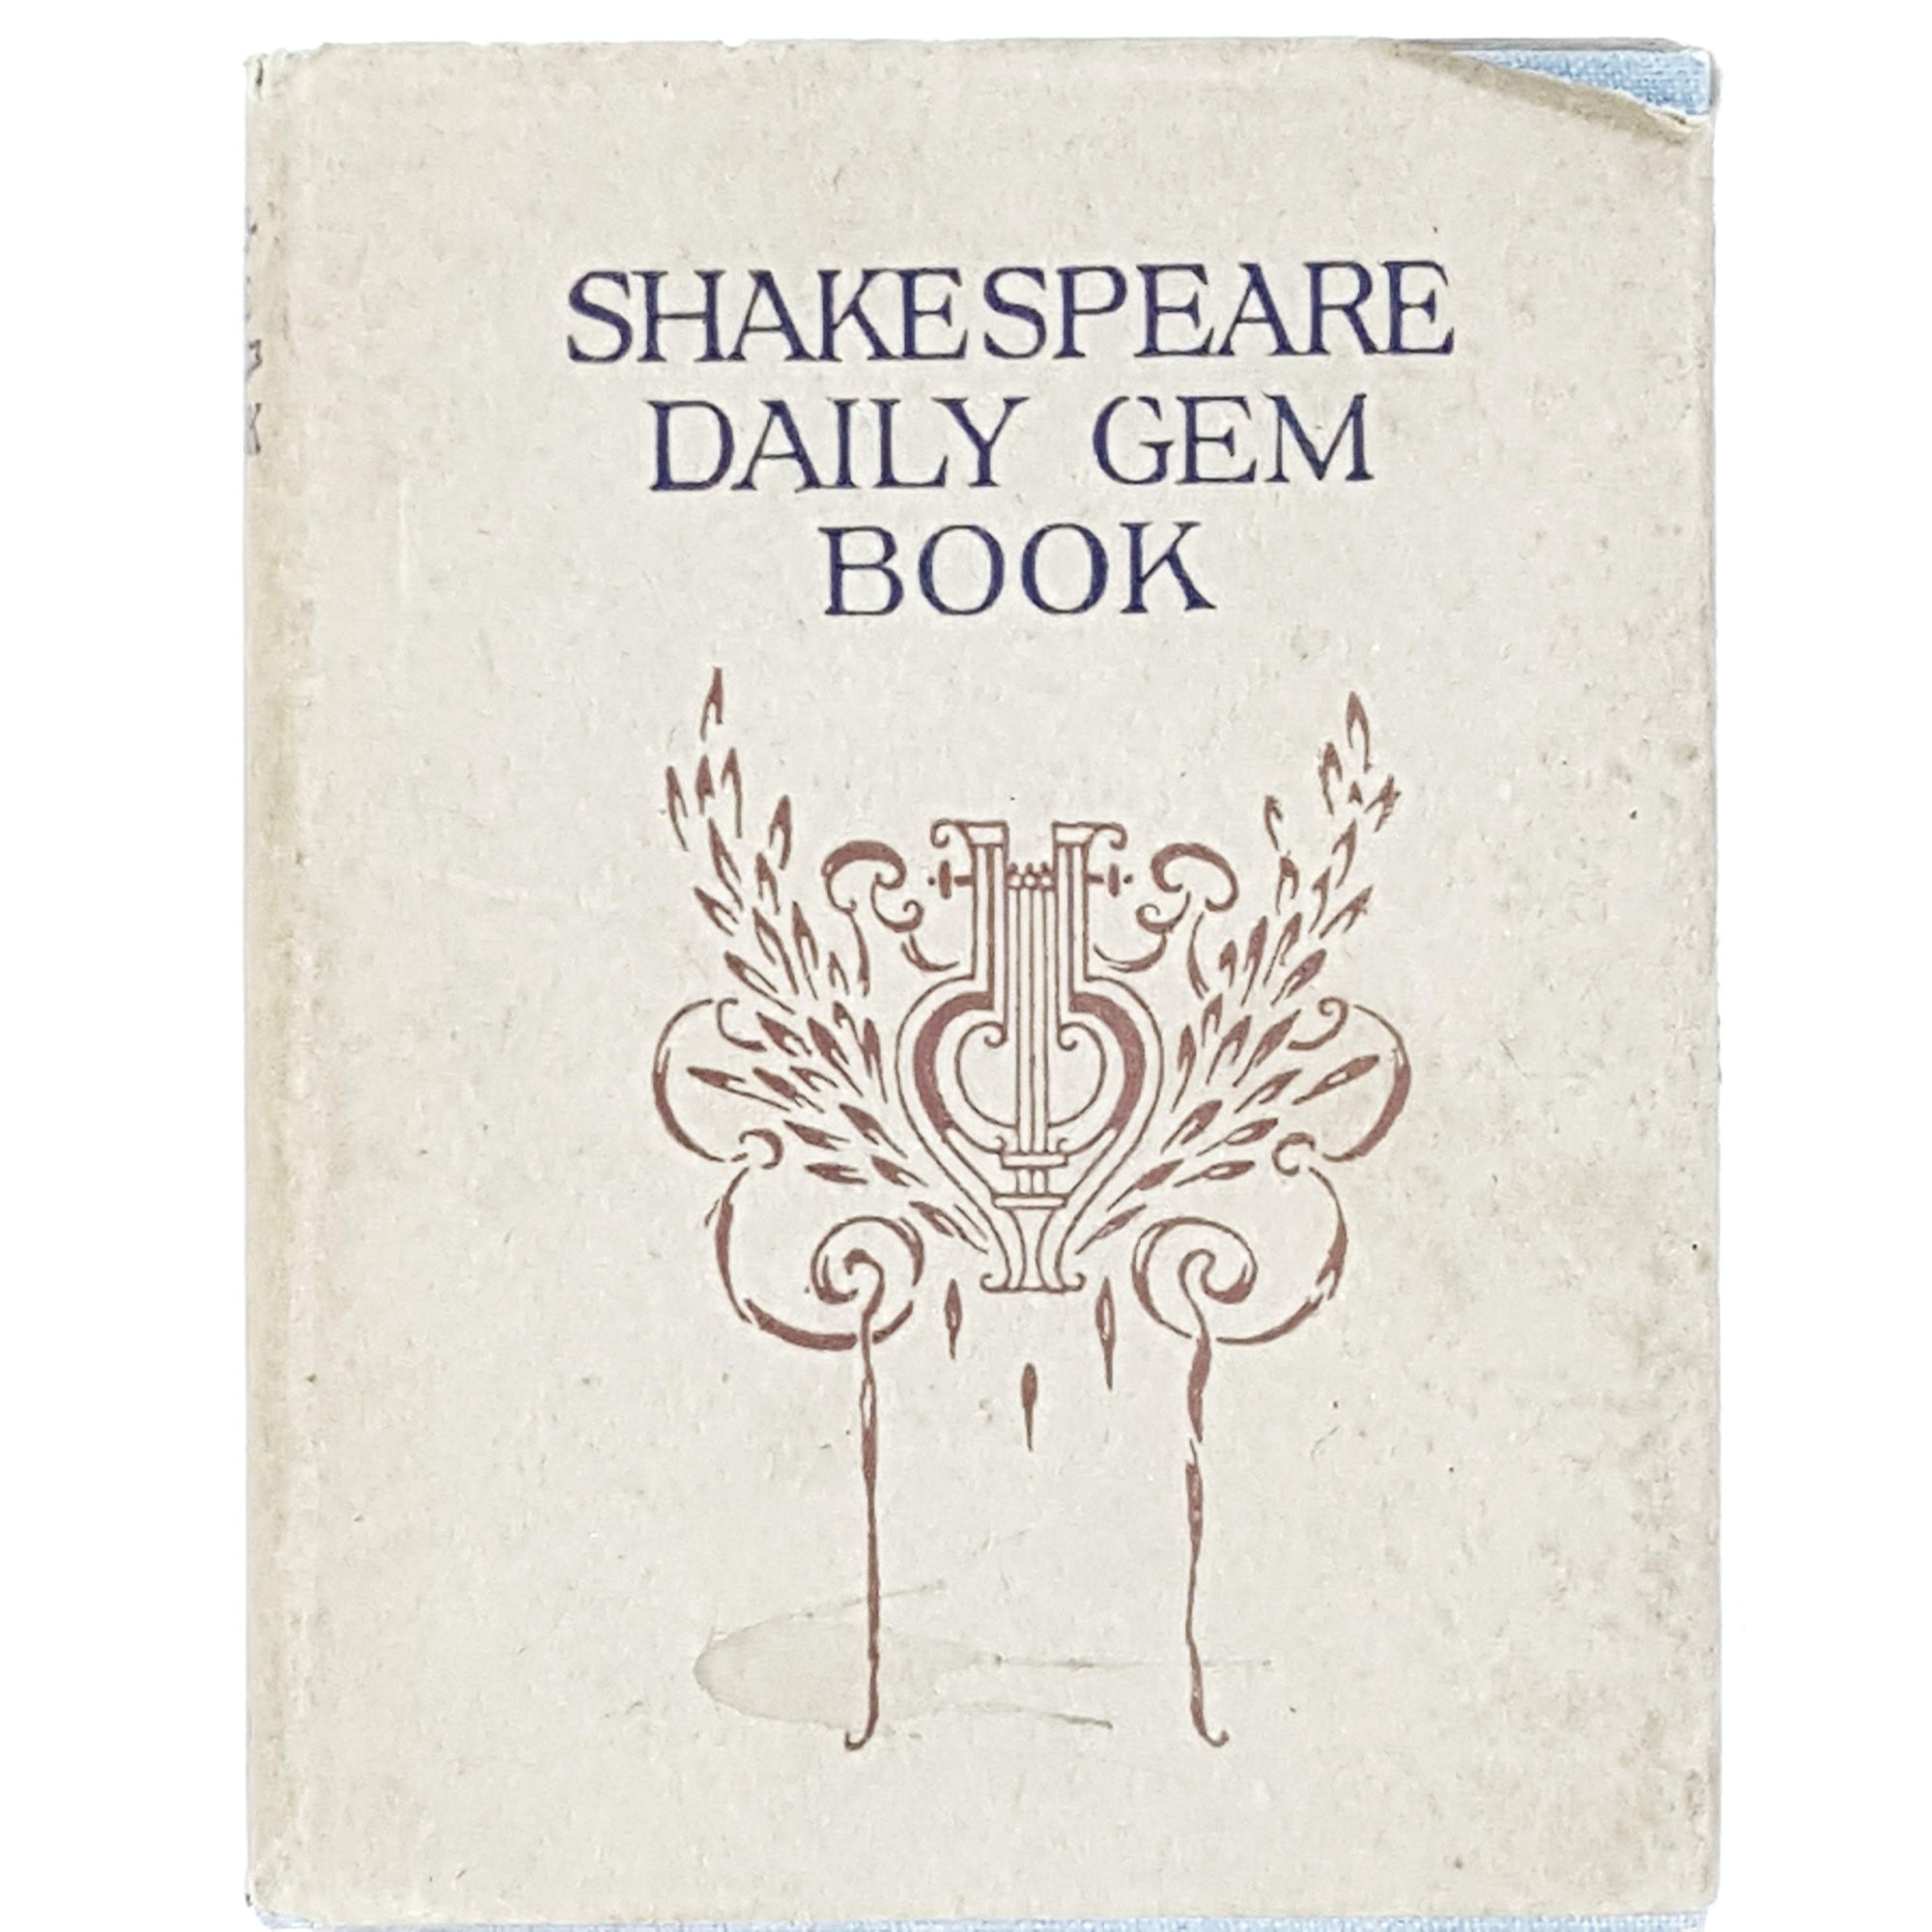 William Shakespeare Daily Gem Book